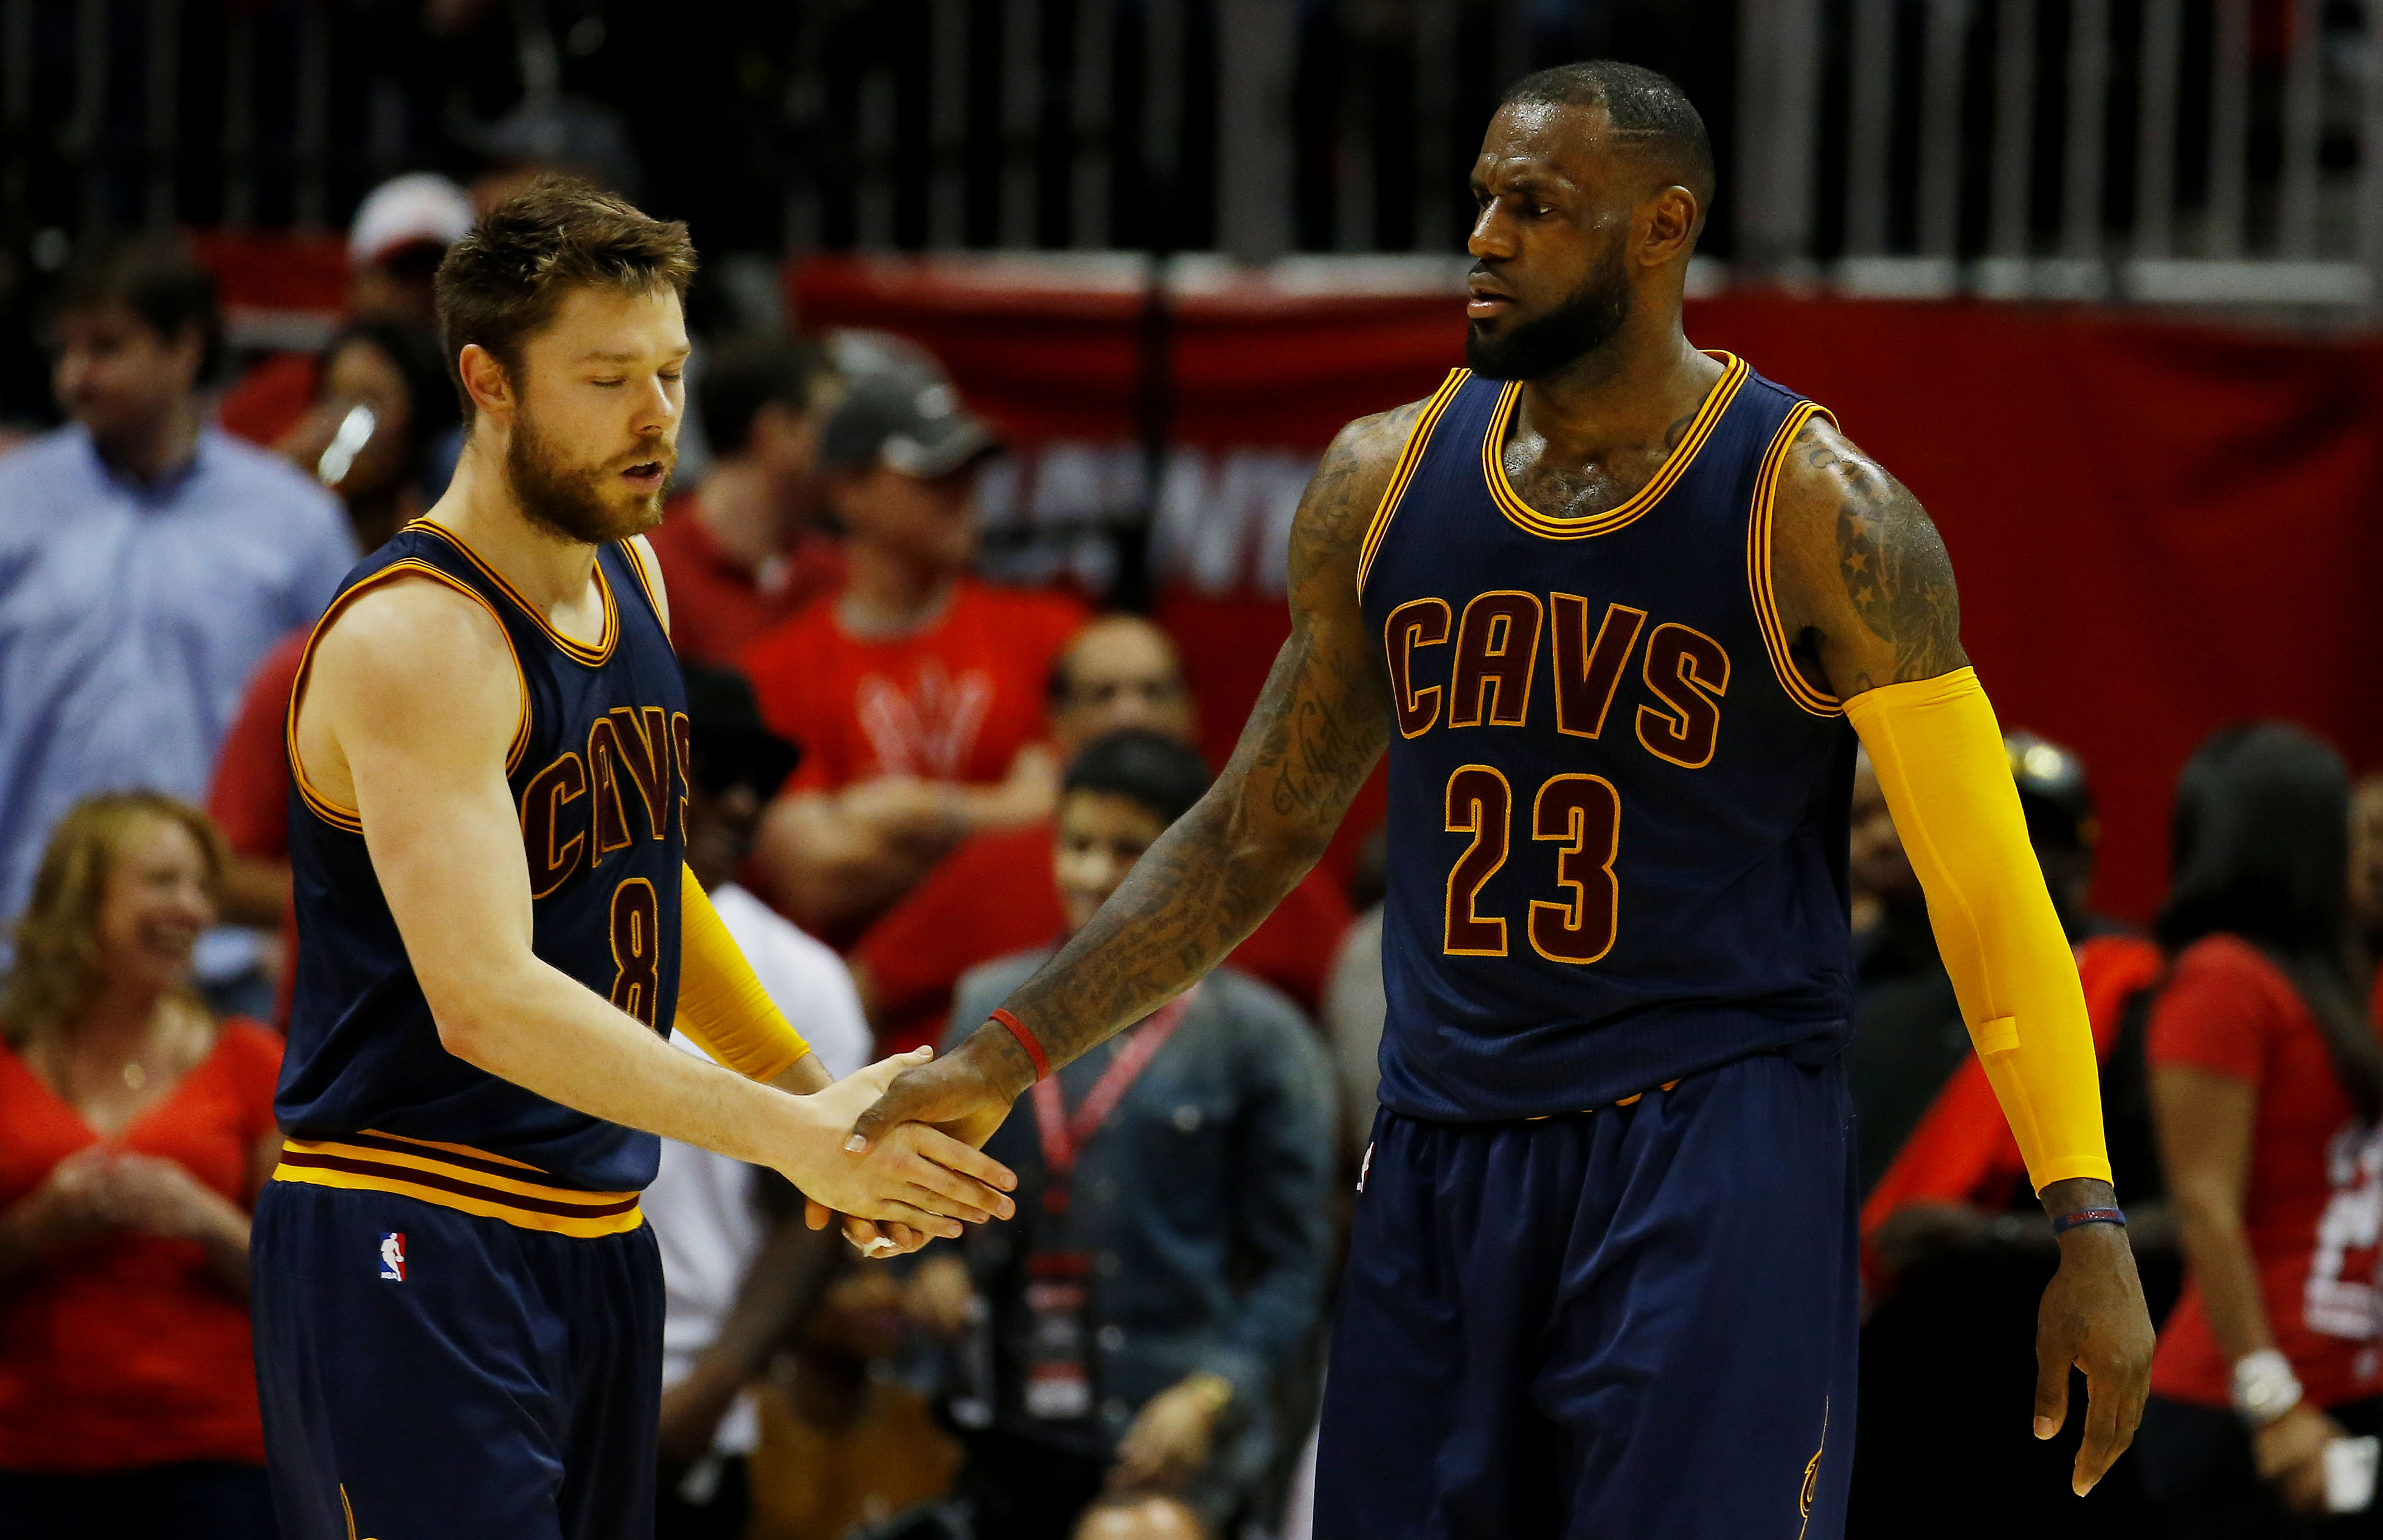 Di did lebron james become famous - That Player Though Happens To Be One Of The Most Reliable And Efficient Backup Point Guards In The Nba Dellavedova Is Averaging 8 1 Points